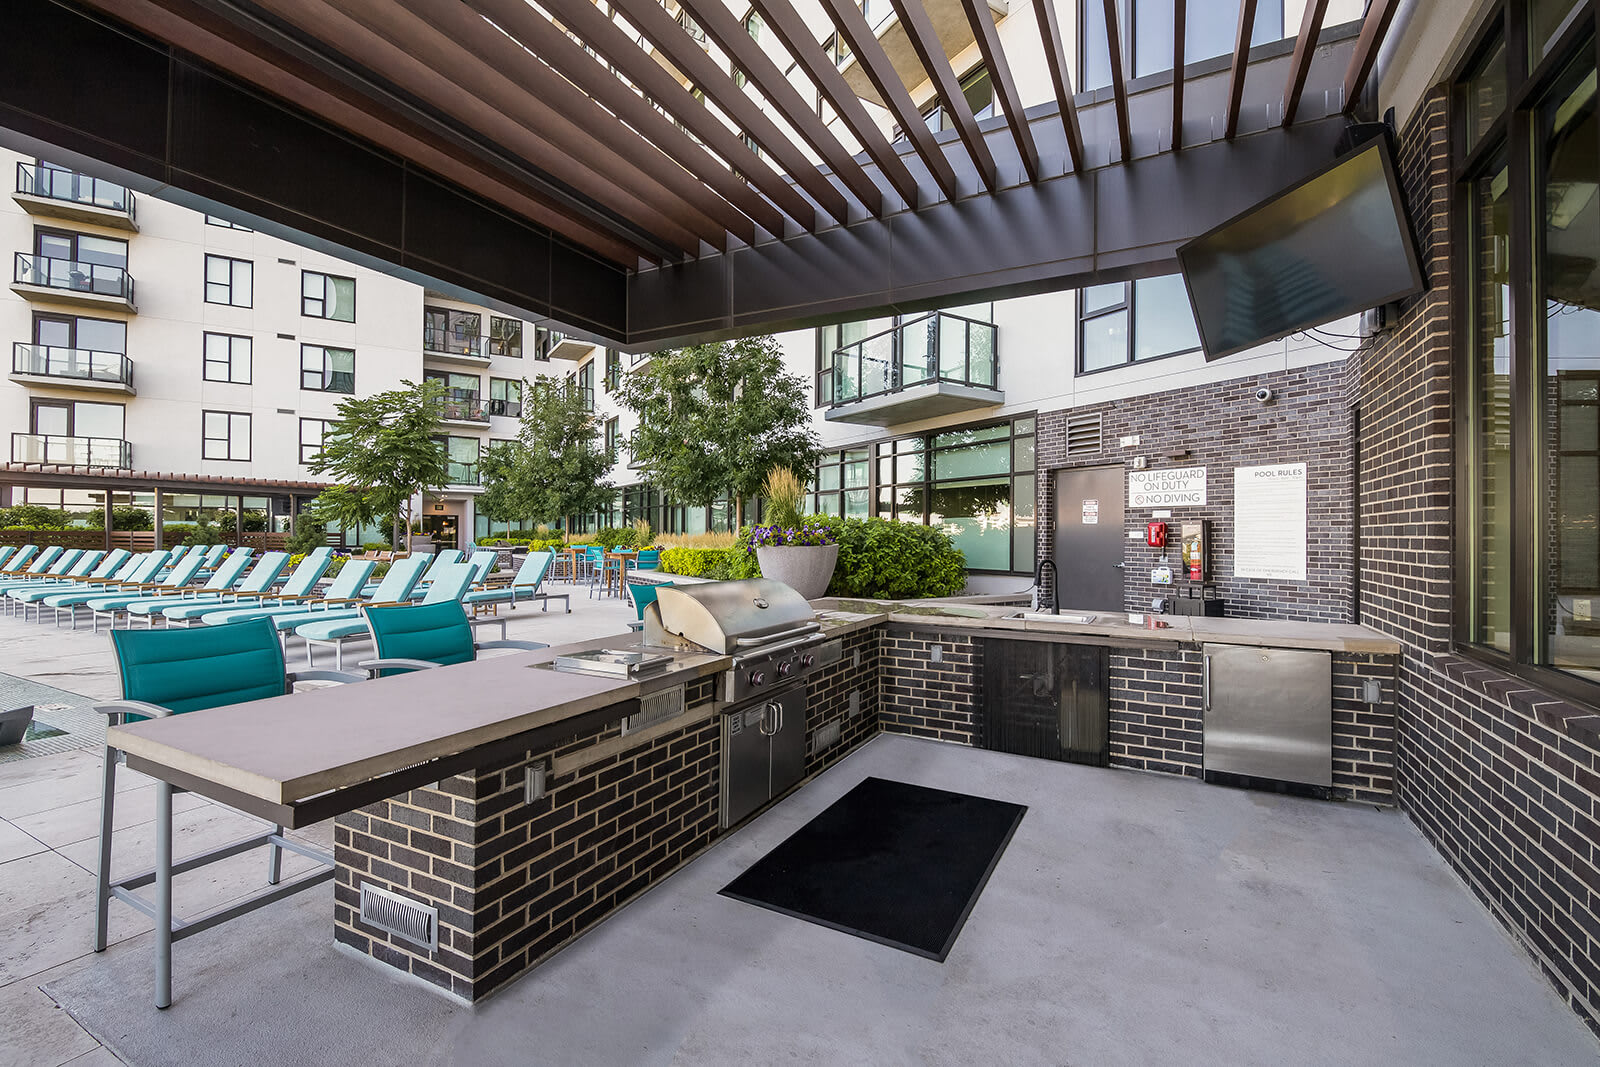 Outdoor Grilling Station and Dining Area at 1000 Speer by Windsor, 80204, CO